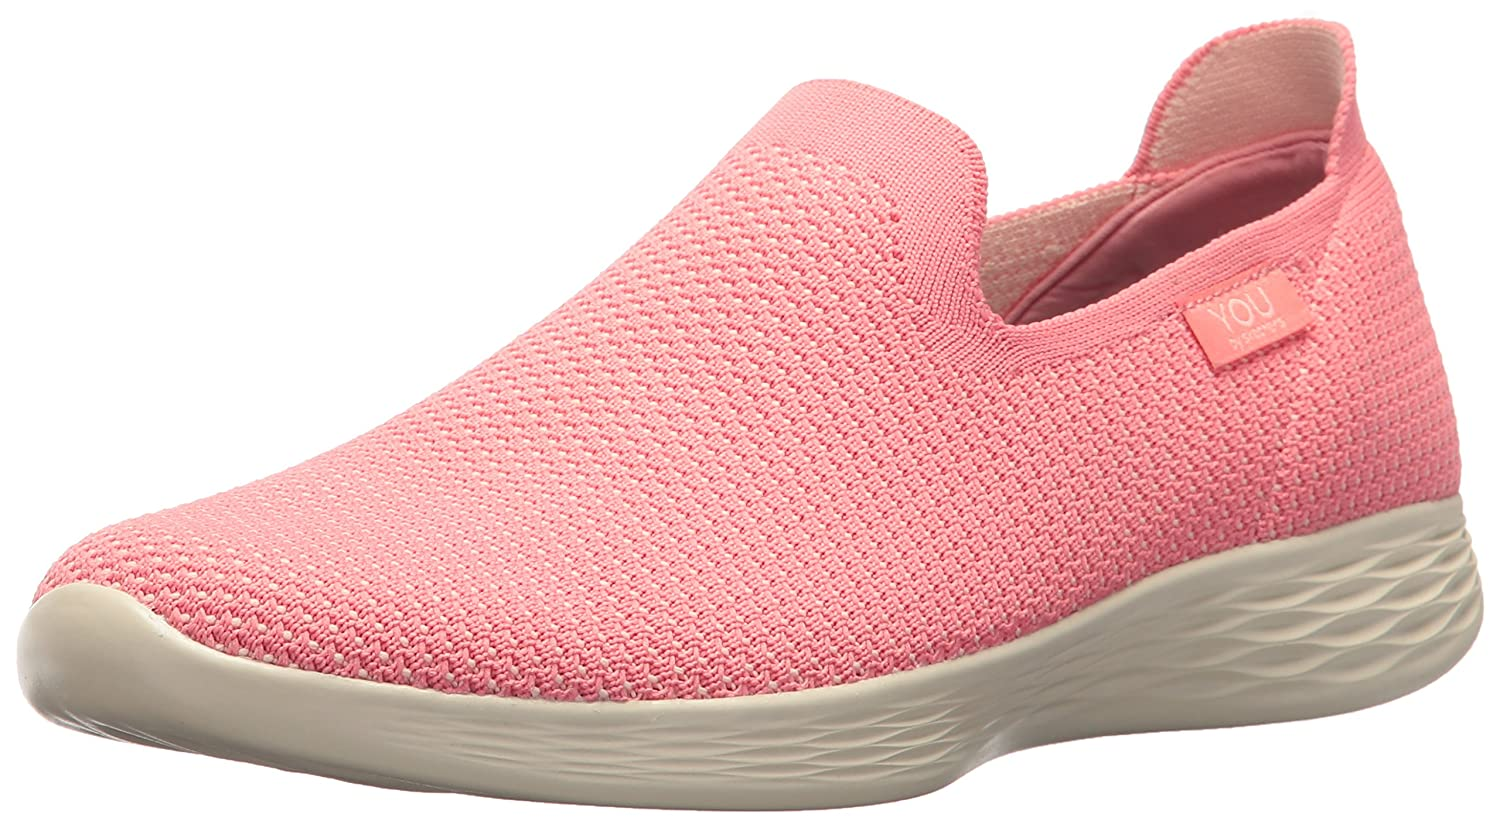 Skechers Women's You Define Sneaker B071WY9BVH 6.5 B(M) US|Pink